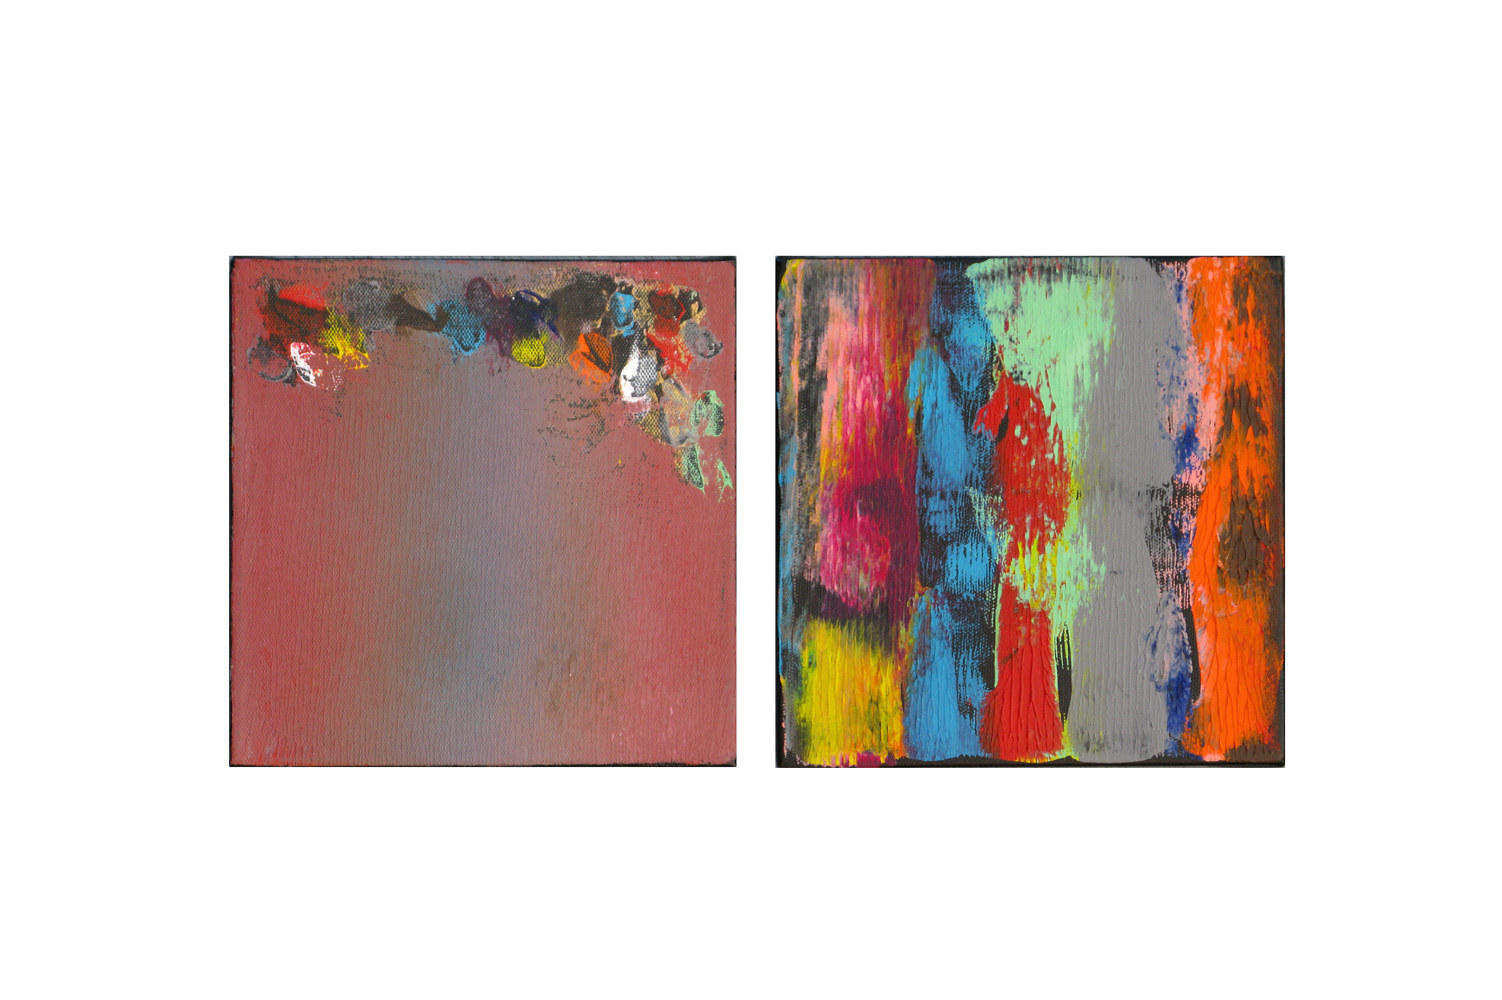 Acrylic painting Color Storm Contrast, 8x8 inches each by Hooshang Khorasani